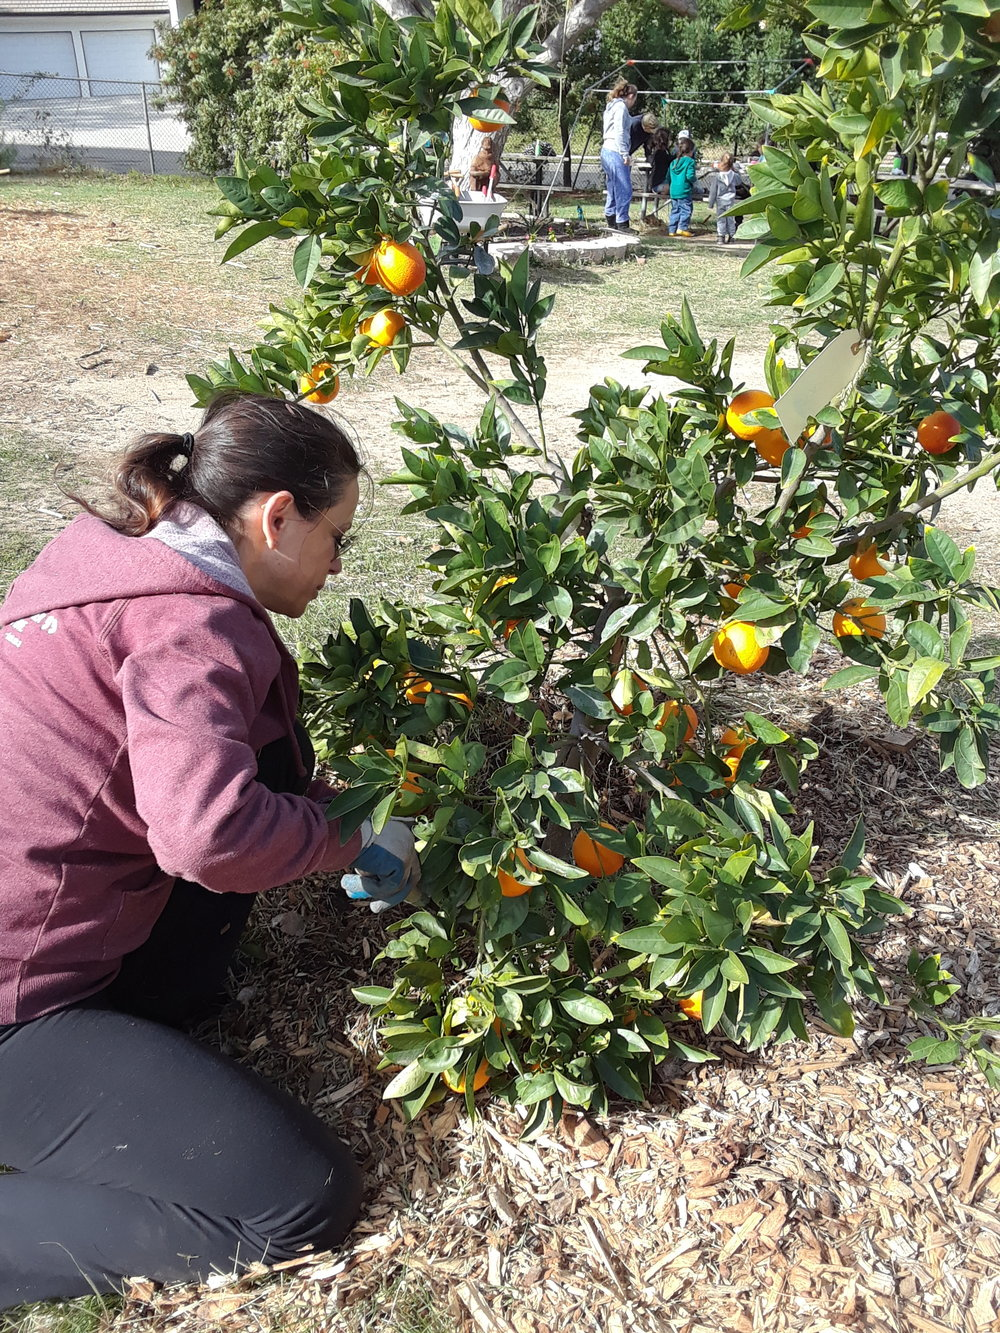 Weeding and mulching around citrus trees in the orchard